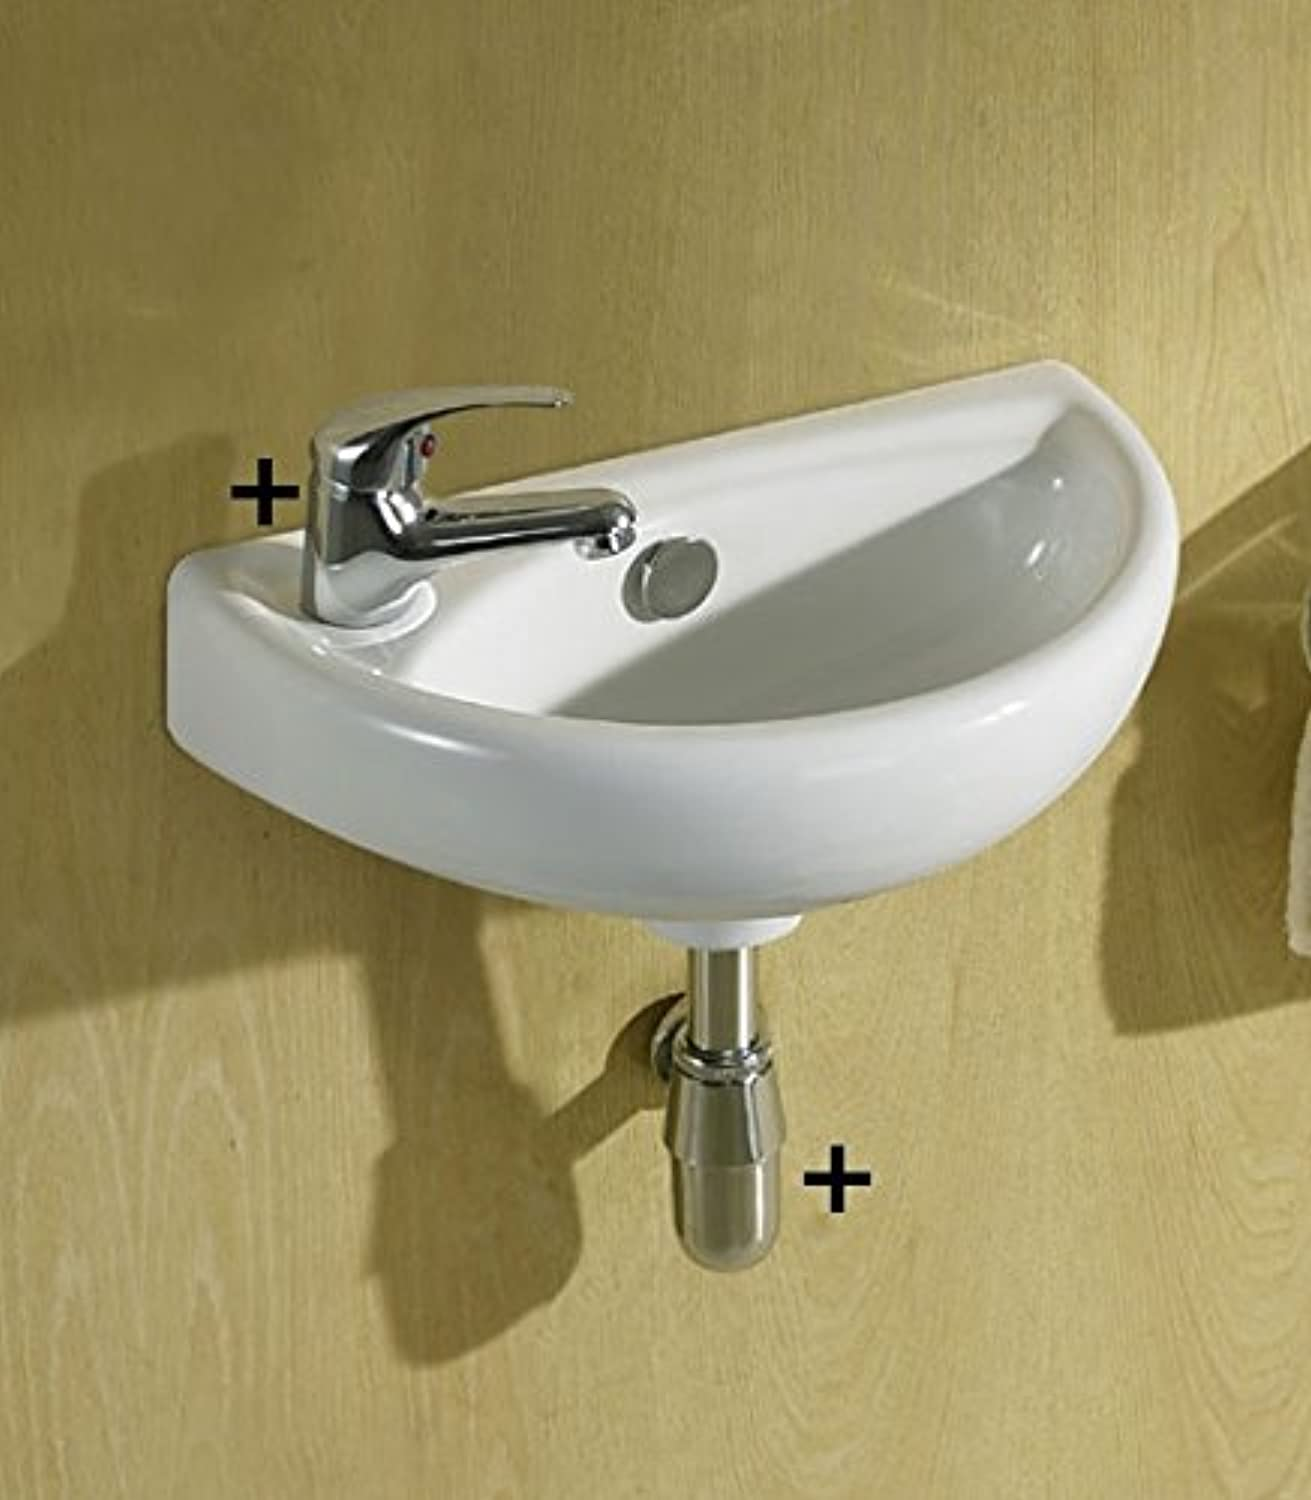 Josh Small Compact Cloakroom Basin Sink Ceramic Wall Hung 395 X 230 Left Hand + Mini Mixer Tap + Slotted Click Clack Waste & Chrome Plated Brass Bottle Trap, Extension Tube (JOSH-LH+V05+BT01)